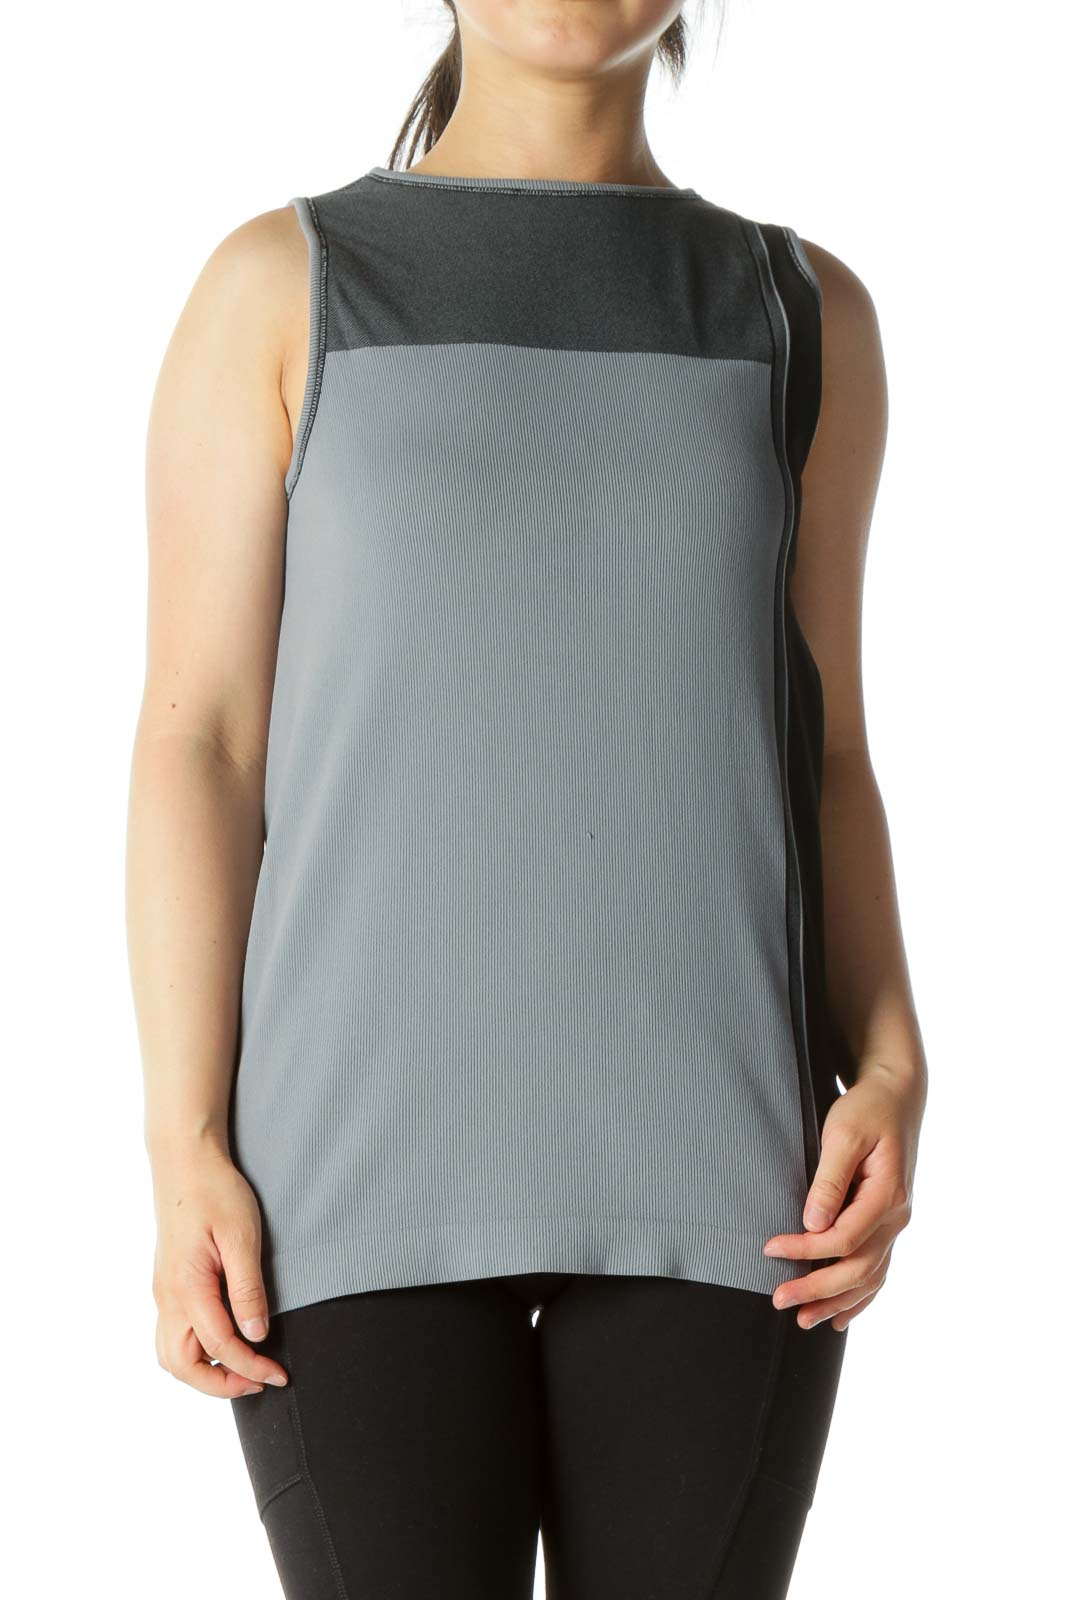 Gray Sports Top